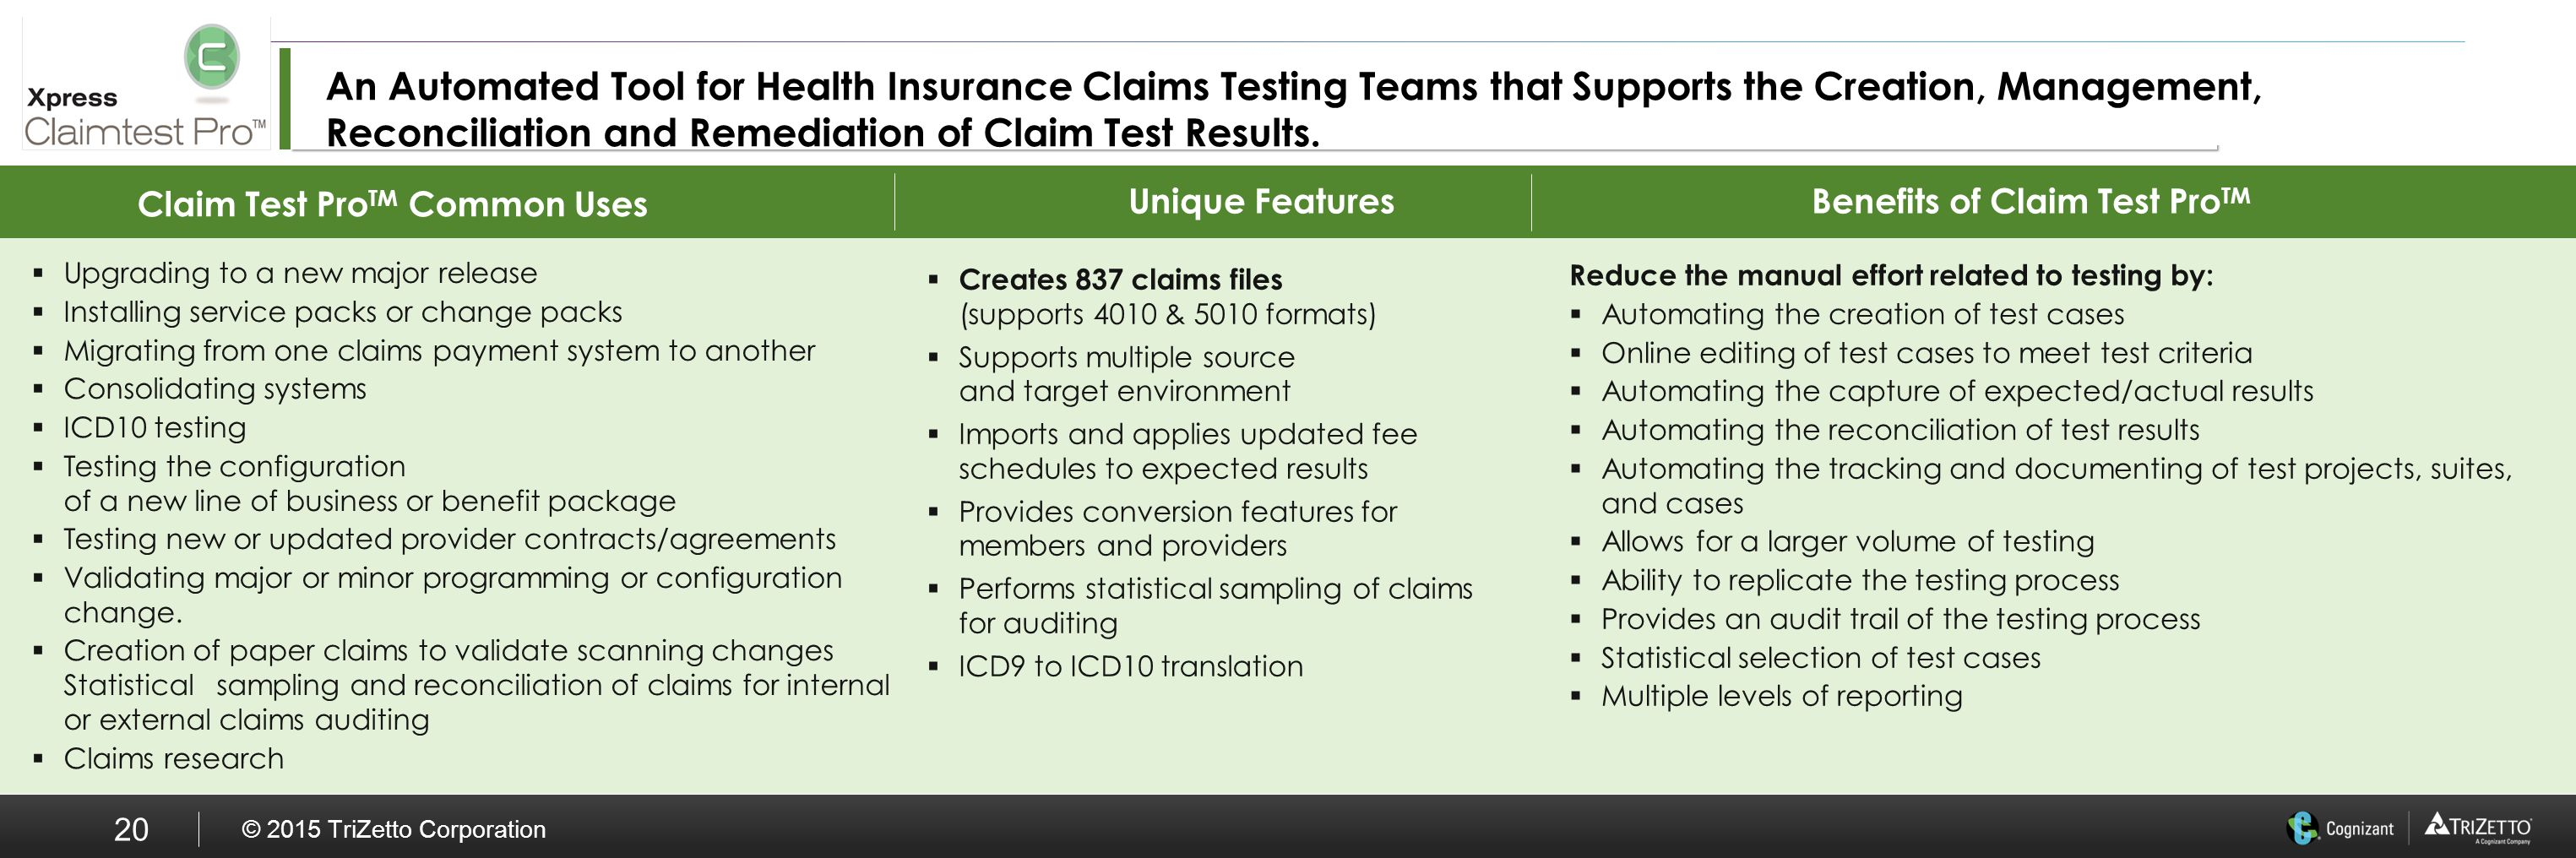 Enterprise wide testing solutions ppt download 20 benefits 1betcityfo Gallery